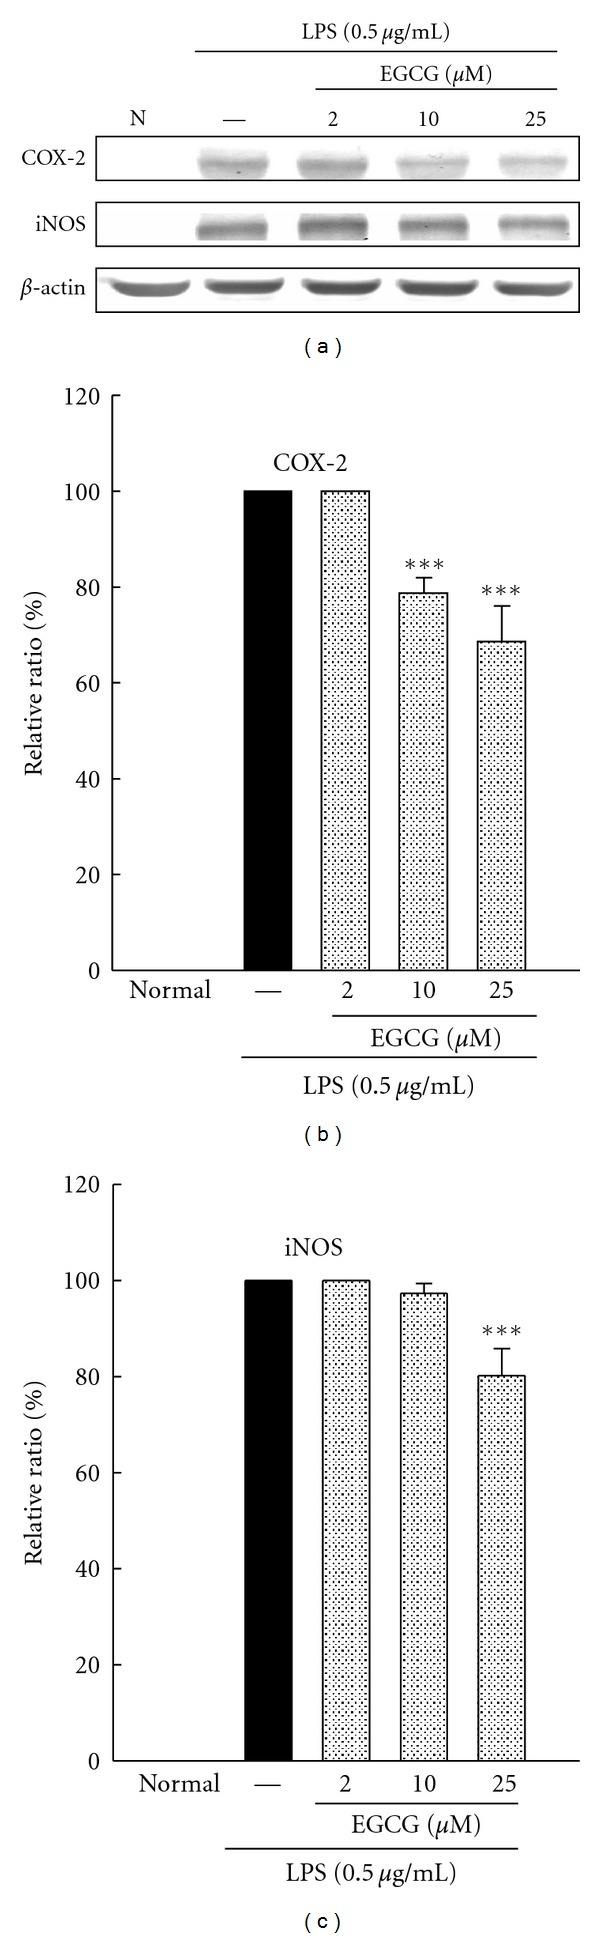 Effects of EGCG (2, 10, and 25 μ M) on expression of COX-2 and iNOS in BV-2 cells treated with lipopolysaccharide (LPS, 0.5 μ g/mL) for 24 h. Cultures were pretreated with EGCG for 1 h before the addition of LPS treatment. Bars represent the mean ± SE from three independent experiments. Densitometry analyses are presented as the relative ratio of protein/ β -actin protein and are represented as percentages of the LPS only group. *** P